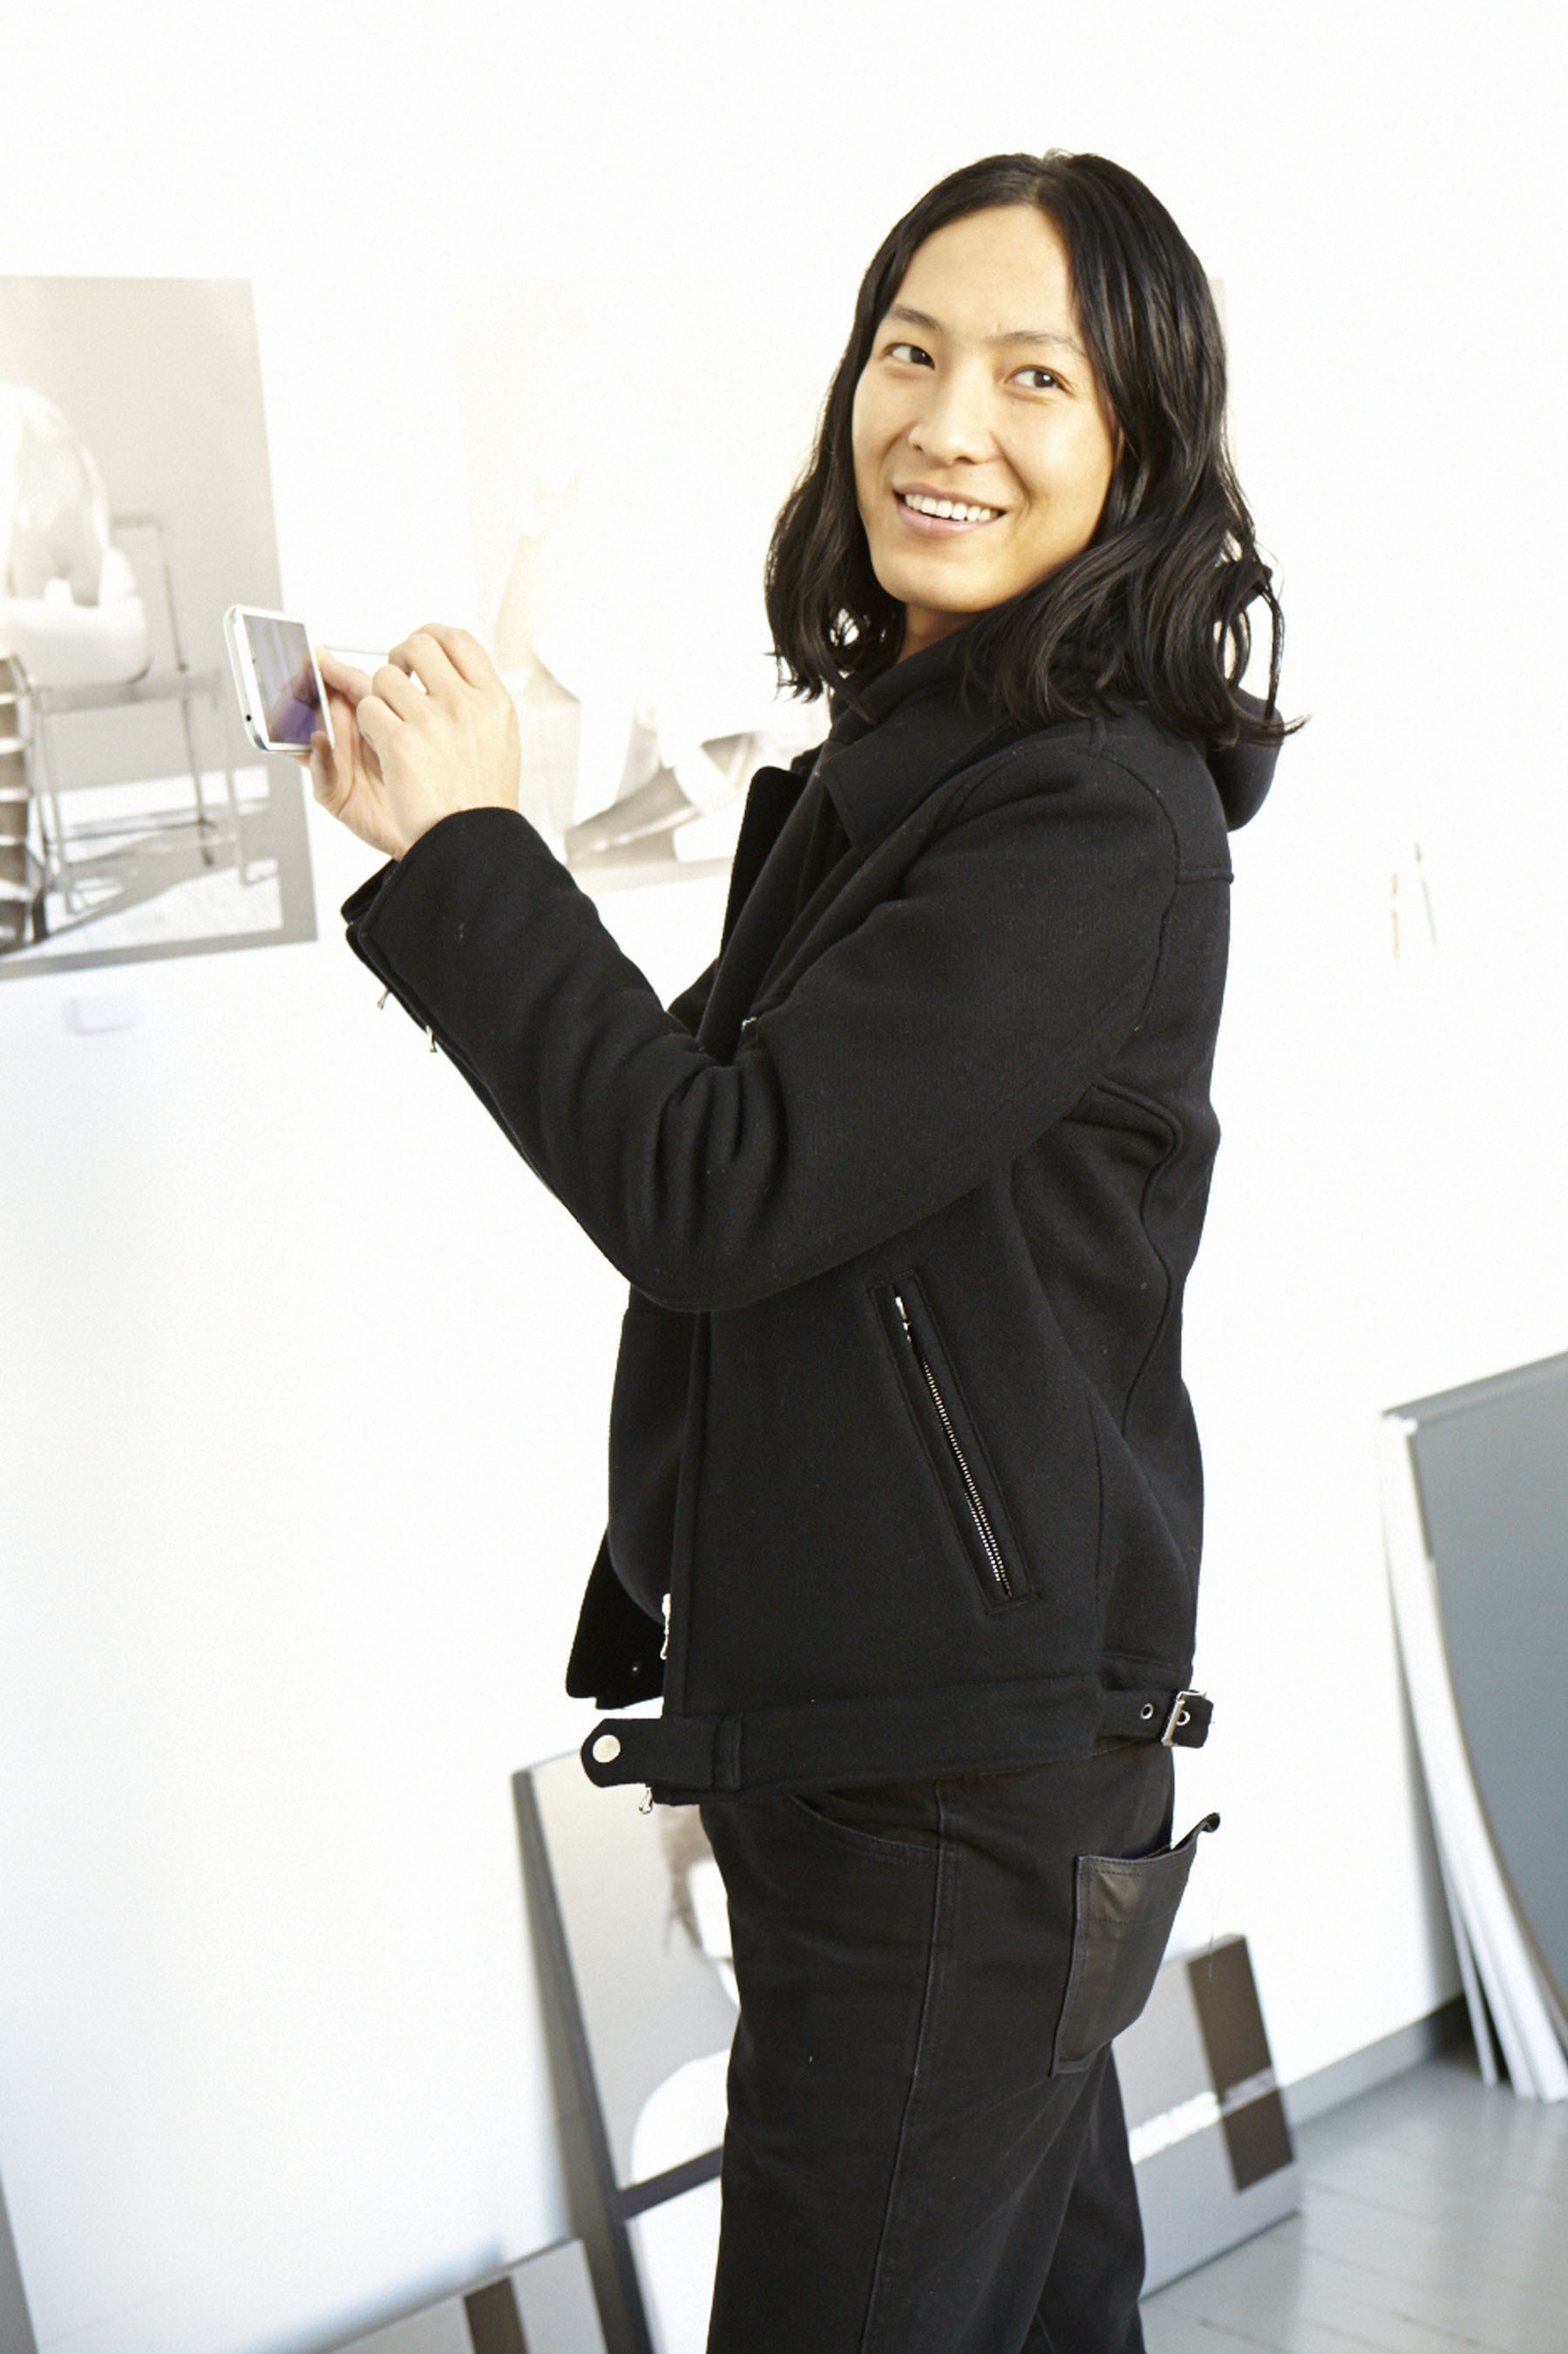 Designer Alexander Wang partners with Samsung to produce the industry's first co-created print inspired by crowd-sourced sketches and images using the GALAXY Note II. (PRNewsFoto/Samsung Electronics Co., Ltd.) (PRNewsFoto/SAMSUNG ELECTRONICS CO., LTD.)